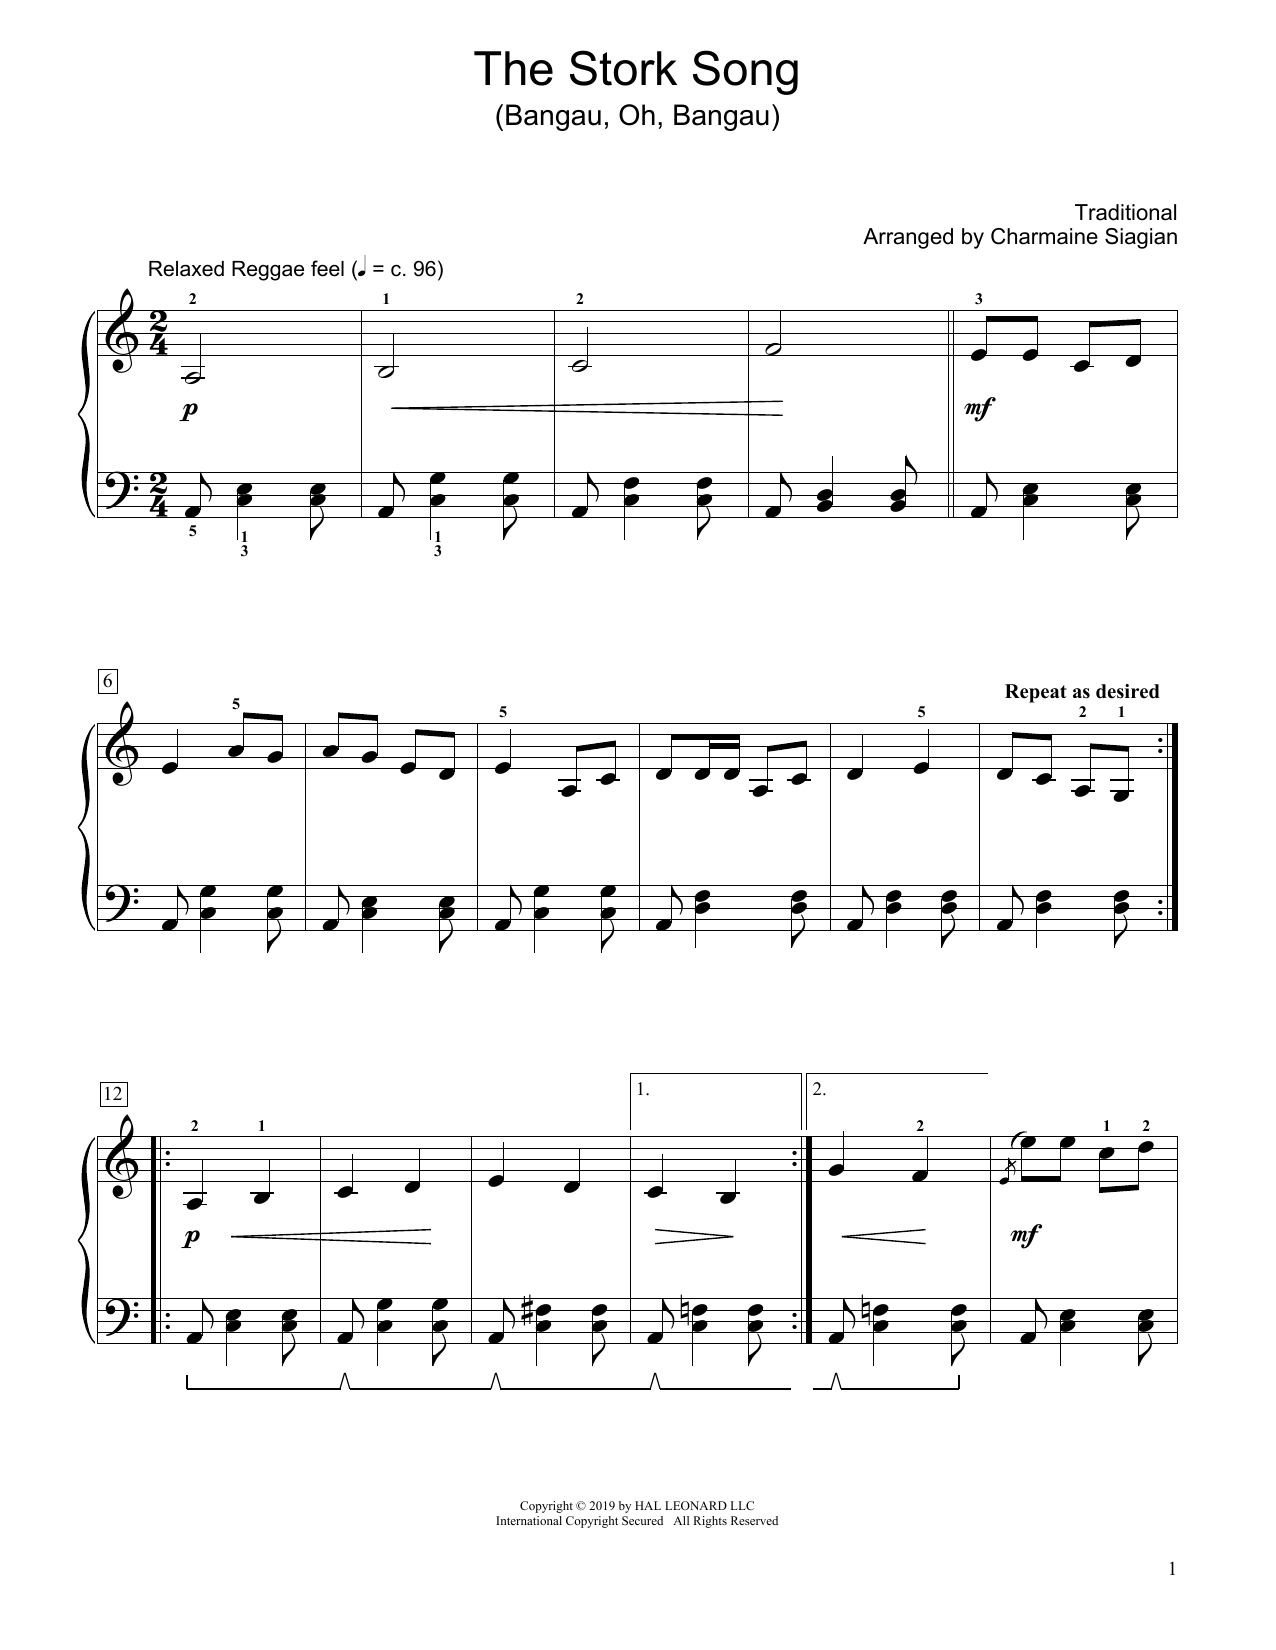 Traditional The Stork Song (Bangau Oh Bangau) (arr. Charmaine Siagian) sheet music notes and chords. Download Printable PDF.